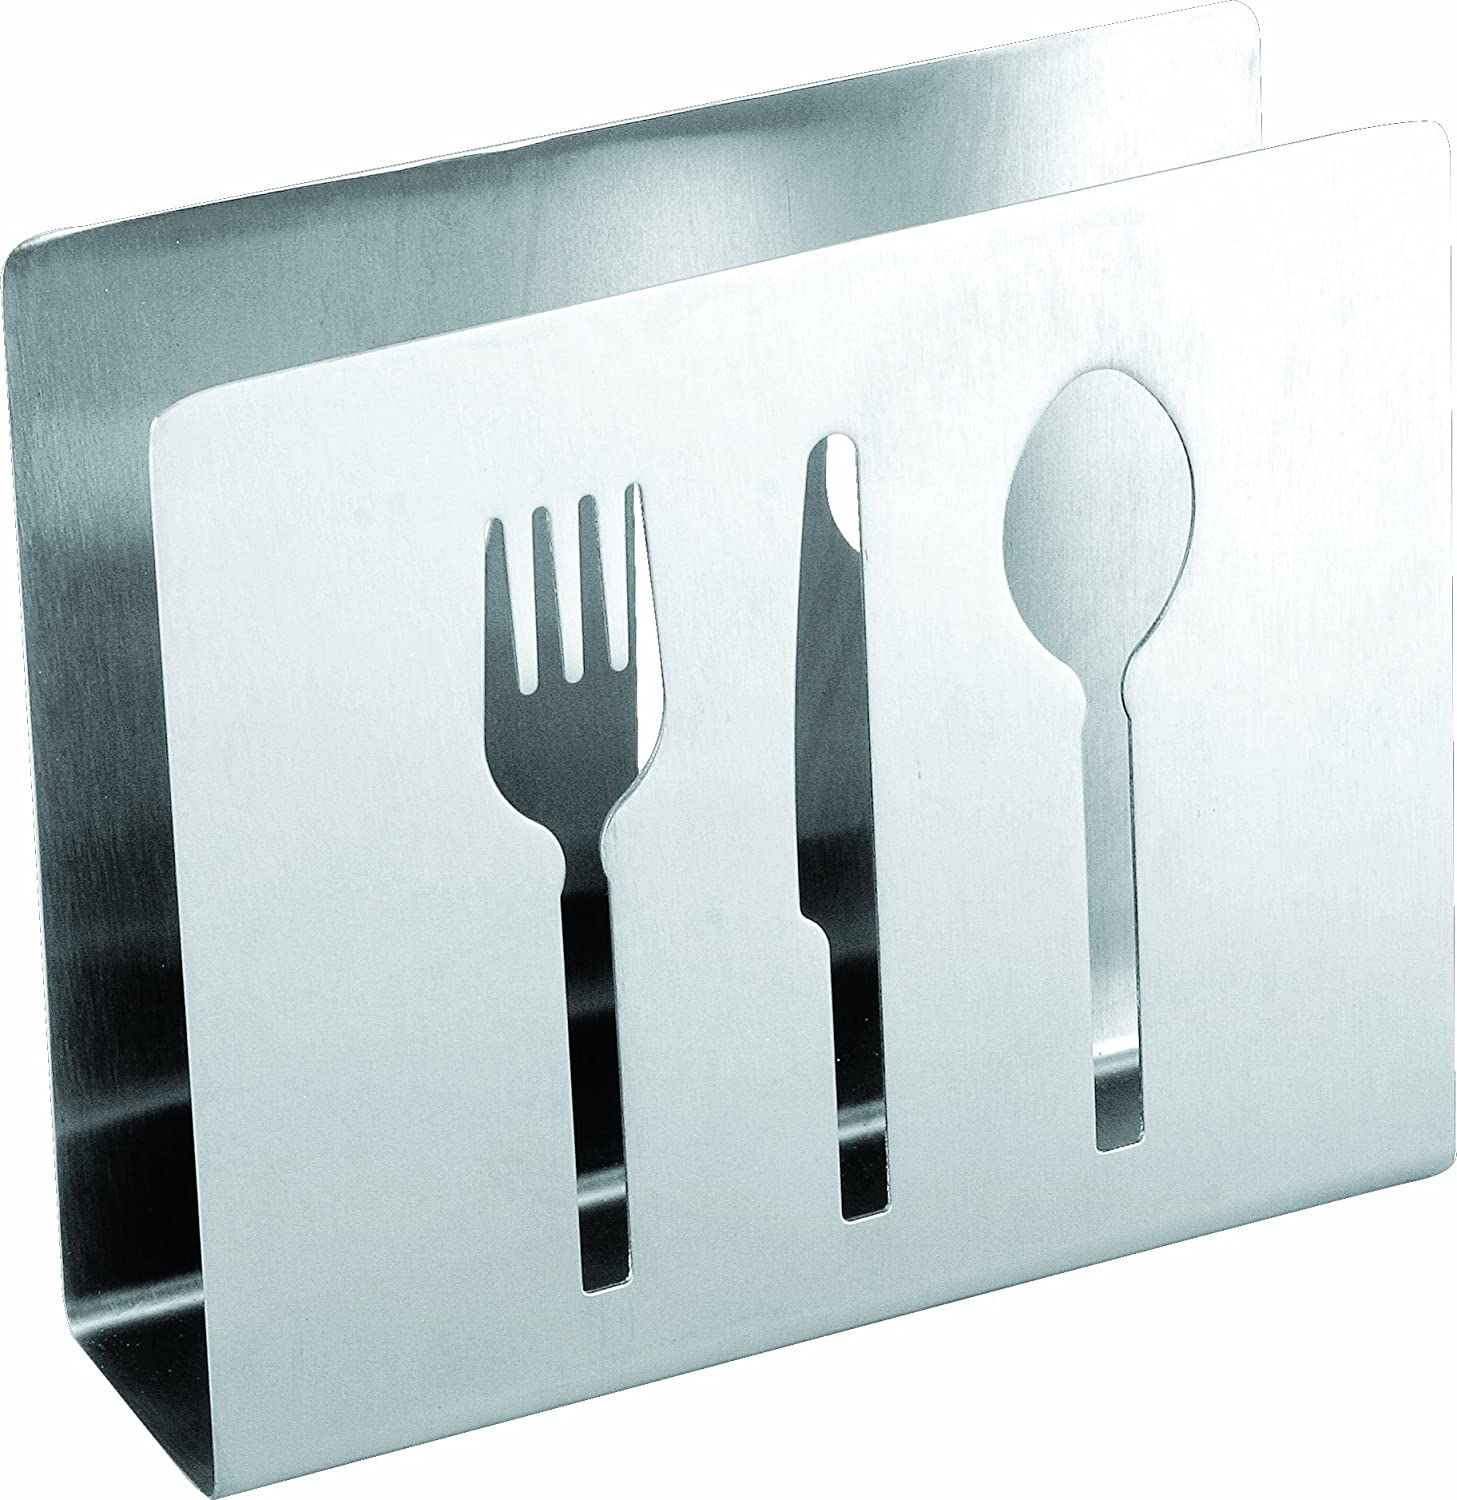 Cuisinox NAP-FTW Napkin Holder with Cut Outs, Stainless Steel Cuisinox (Import)